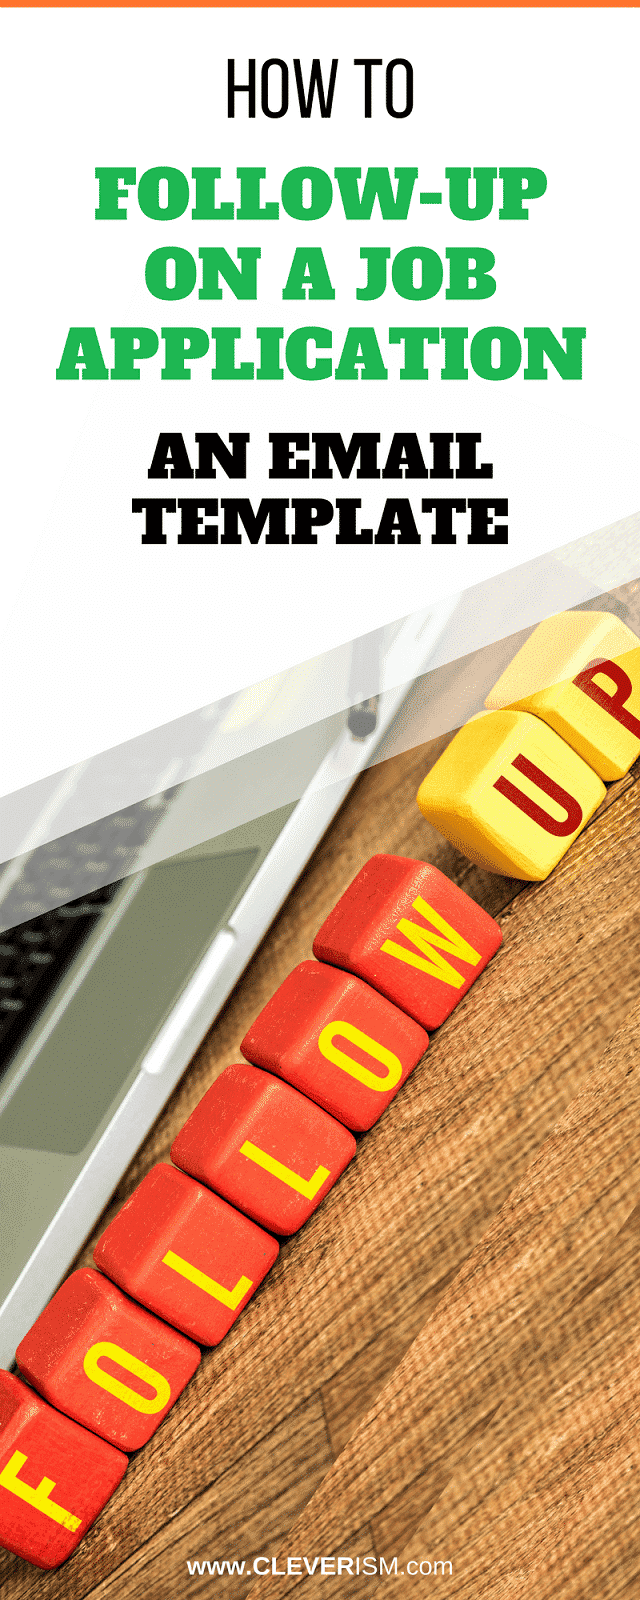 how to follow up on a job application an email template followup